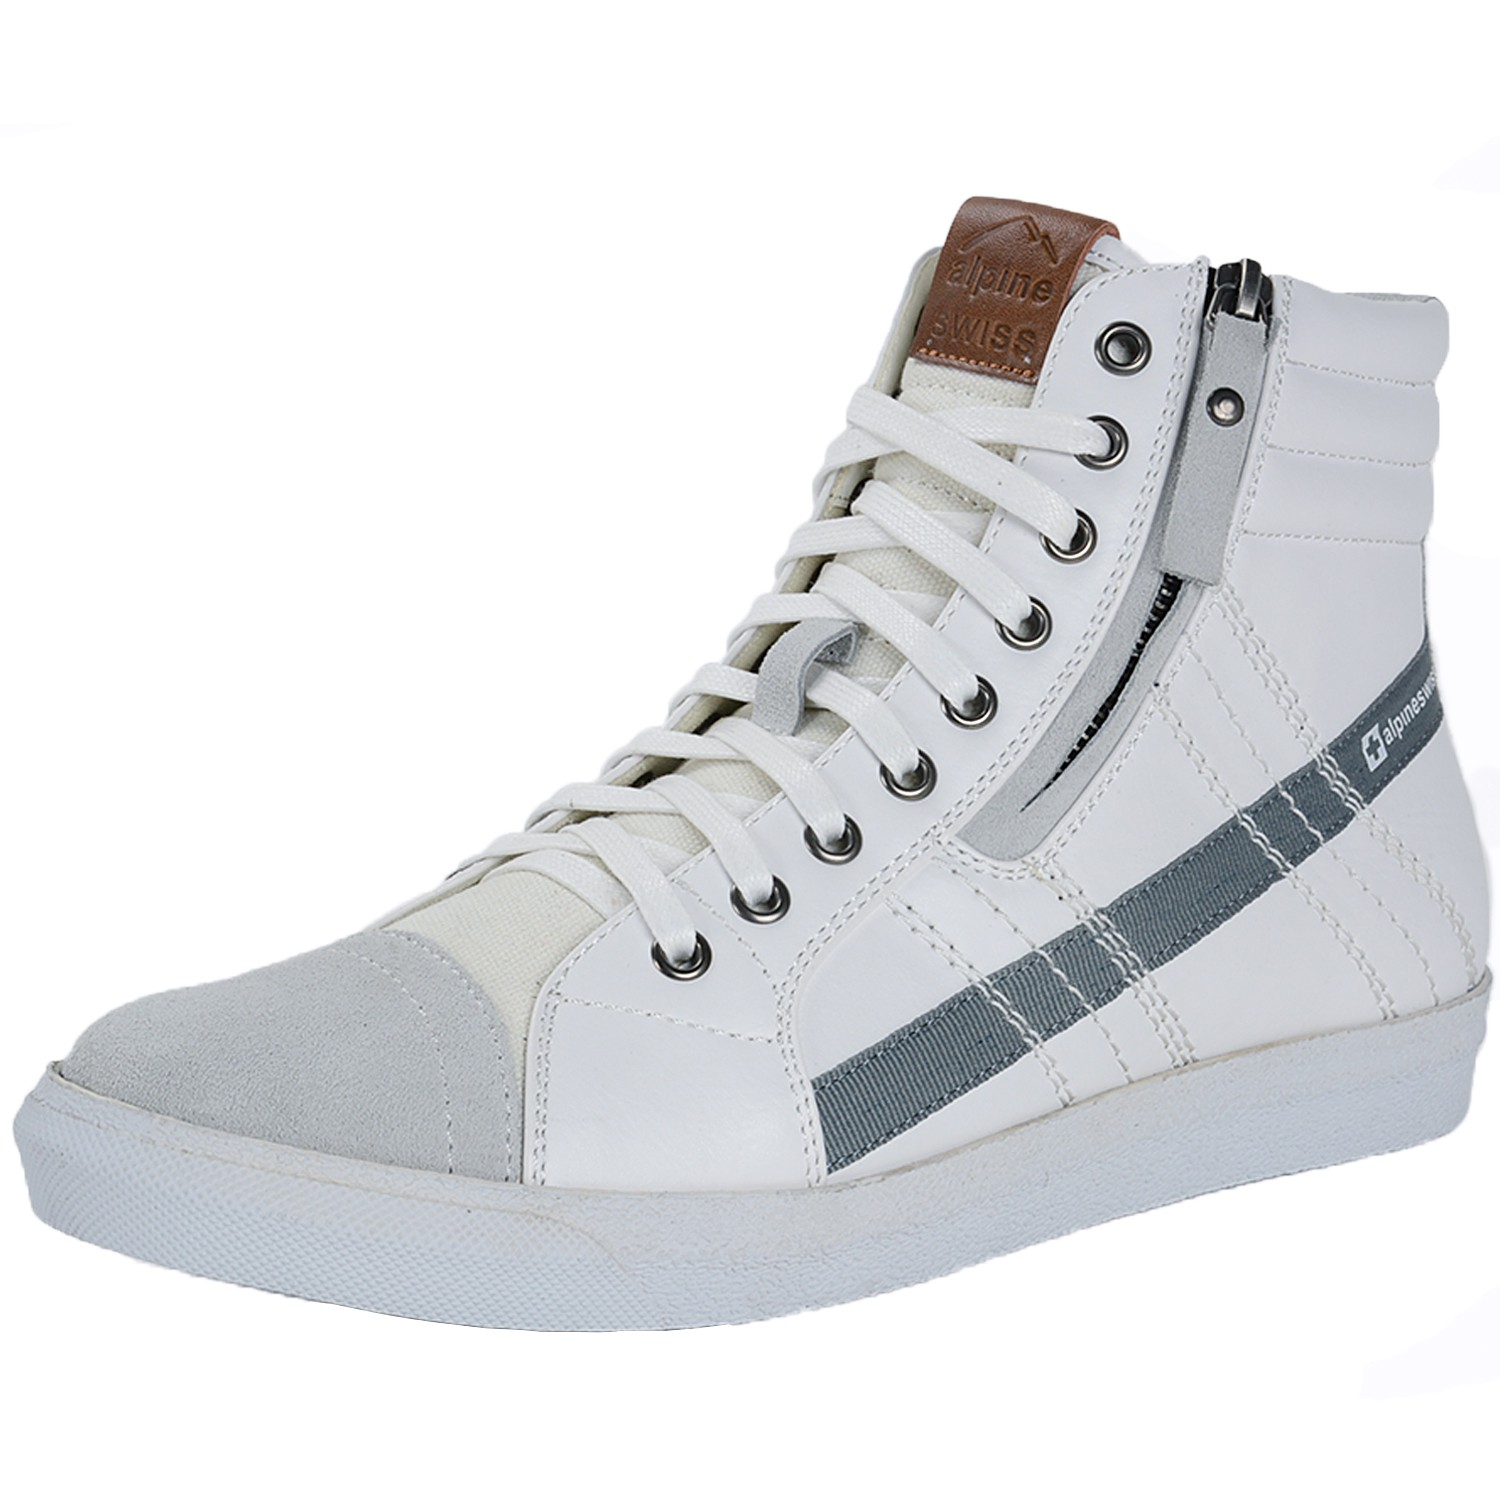 Mens High Top Lace Up Dress Shoes